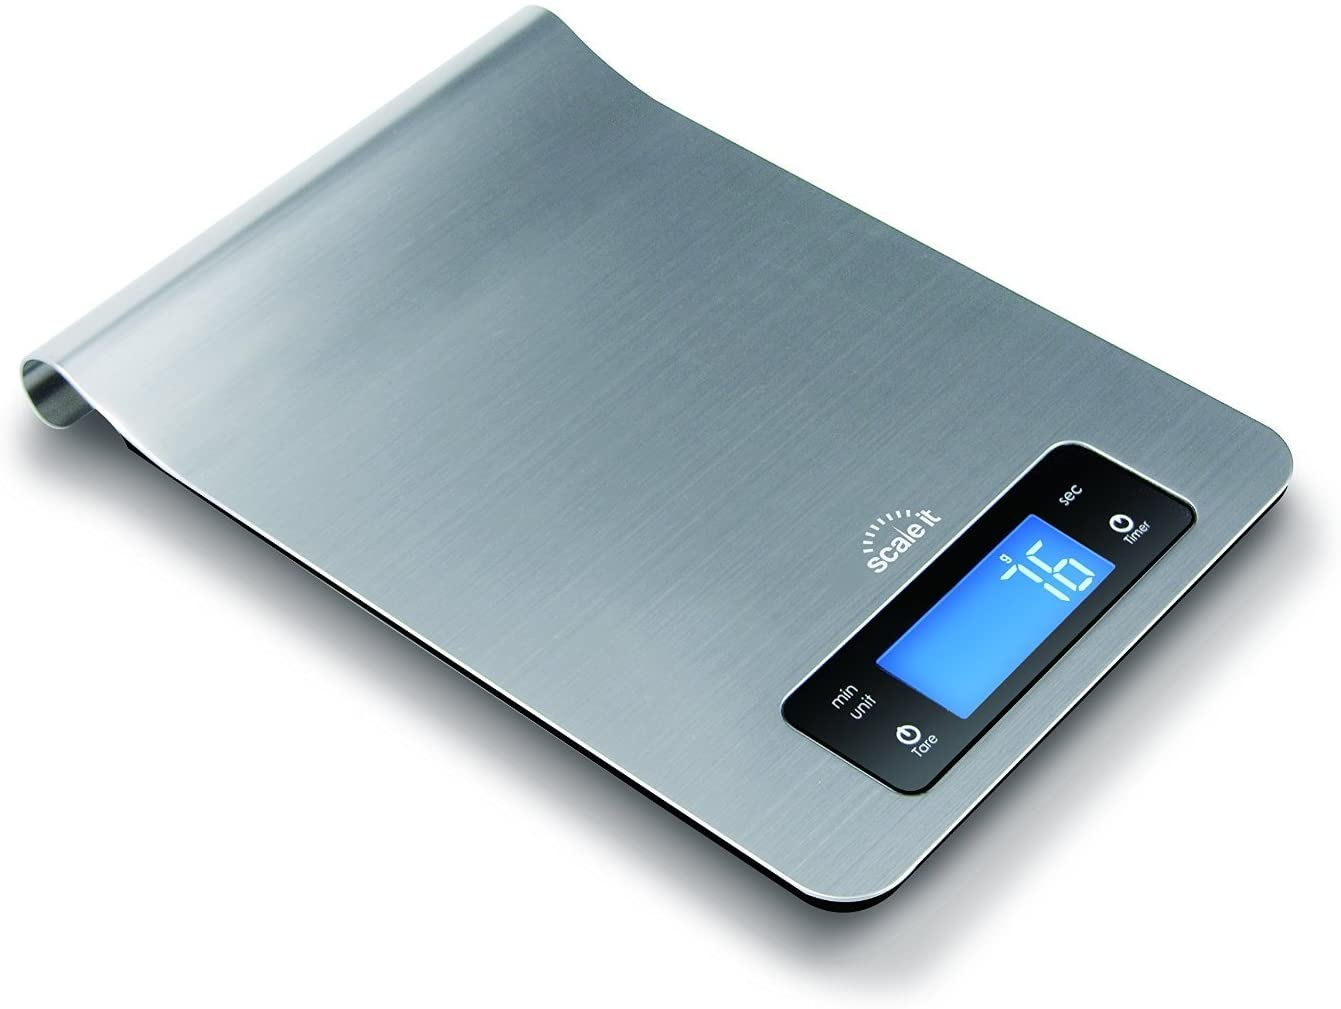 Scaleit Digital Multi-function Kitchen and Food Scale, Elegant Brushed Stainless Steel Design with Special Hang-able Design for Easy Storage